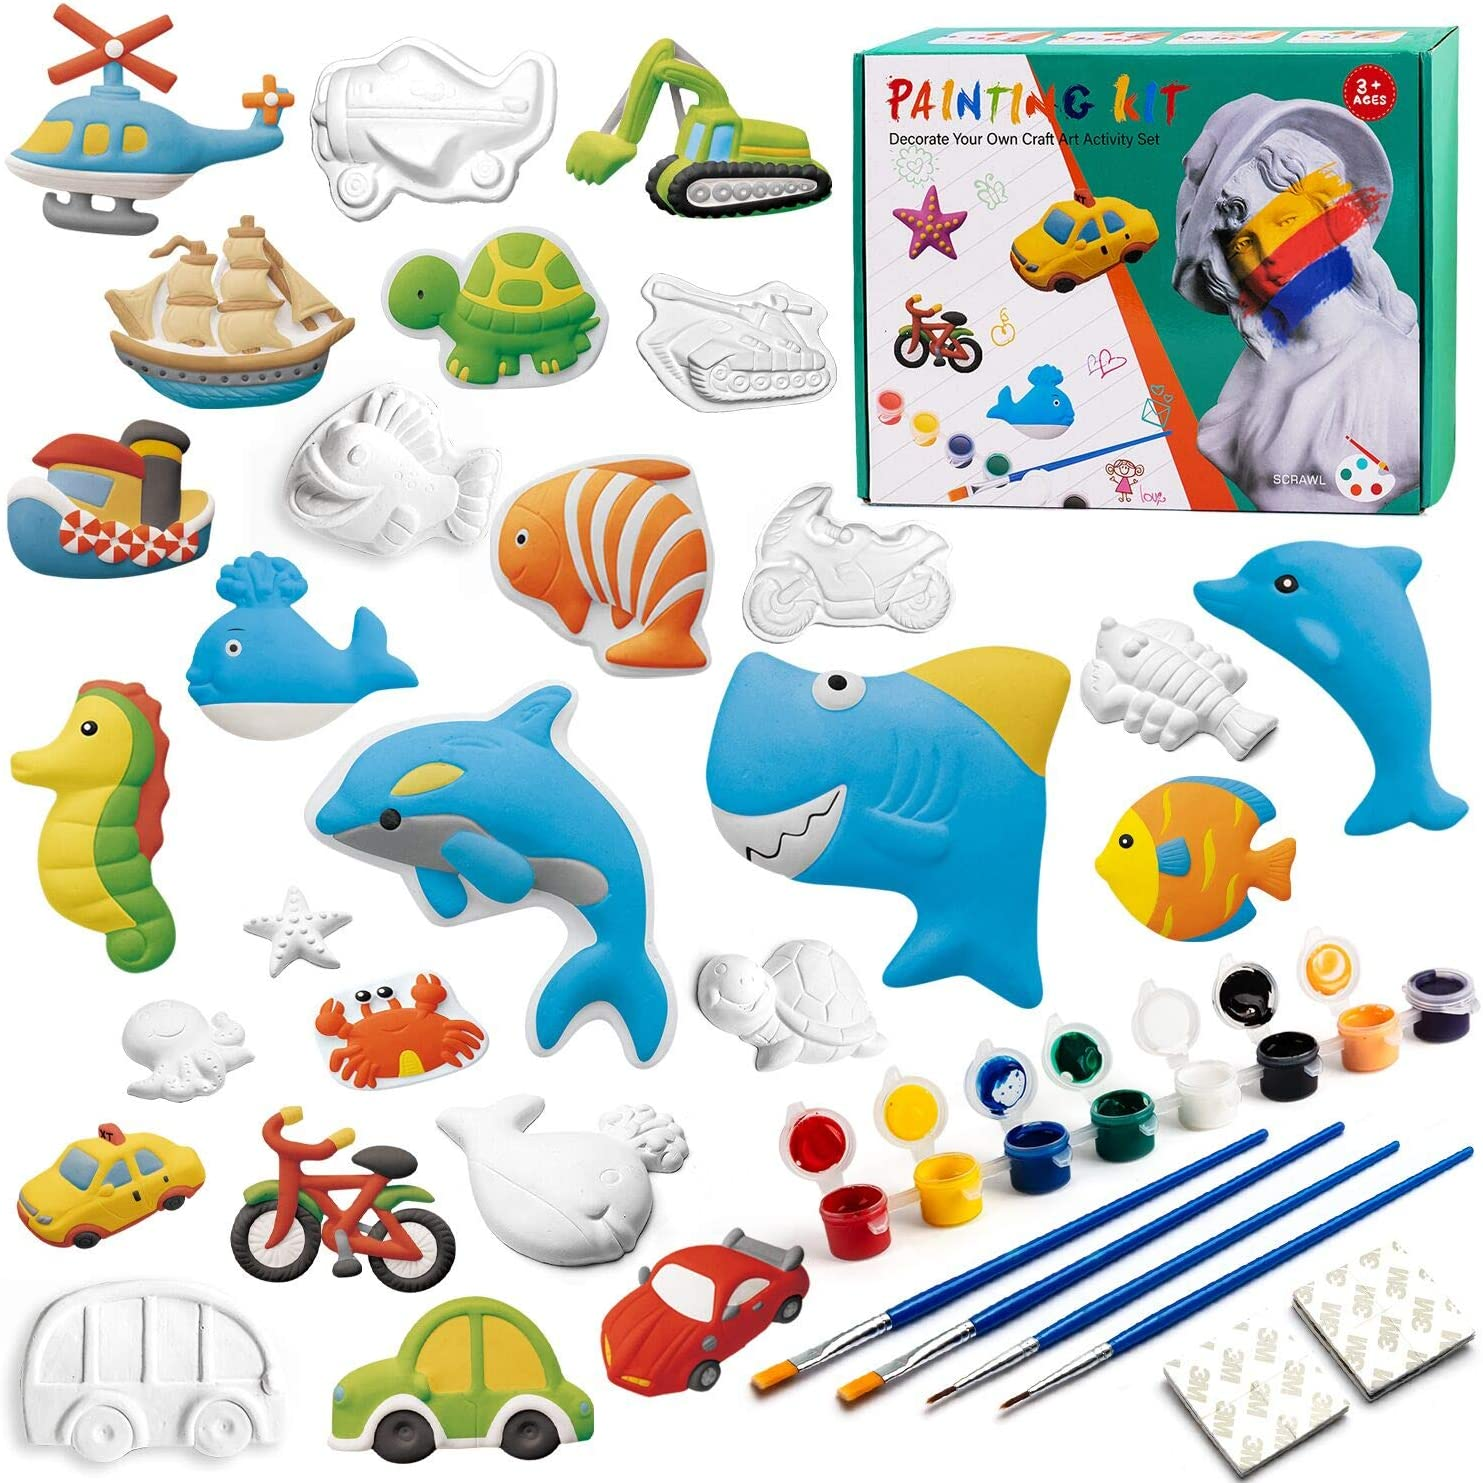 Tigerhu 55 Pcs Kids Crafts and Arts Set Painting Kit - Paint by Numbers for Kids- Painting Your Own Figurines, Includes 27 Figurines, 8 Pots of Paint,16 stickers, 4 Brushes, Complete Plaster Craft Kit